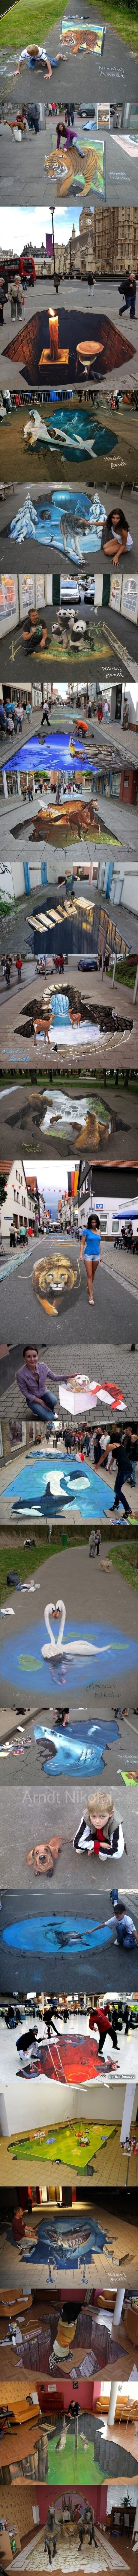 Awesome Street Art | Click the link to view full image and description : )